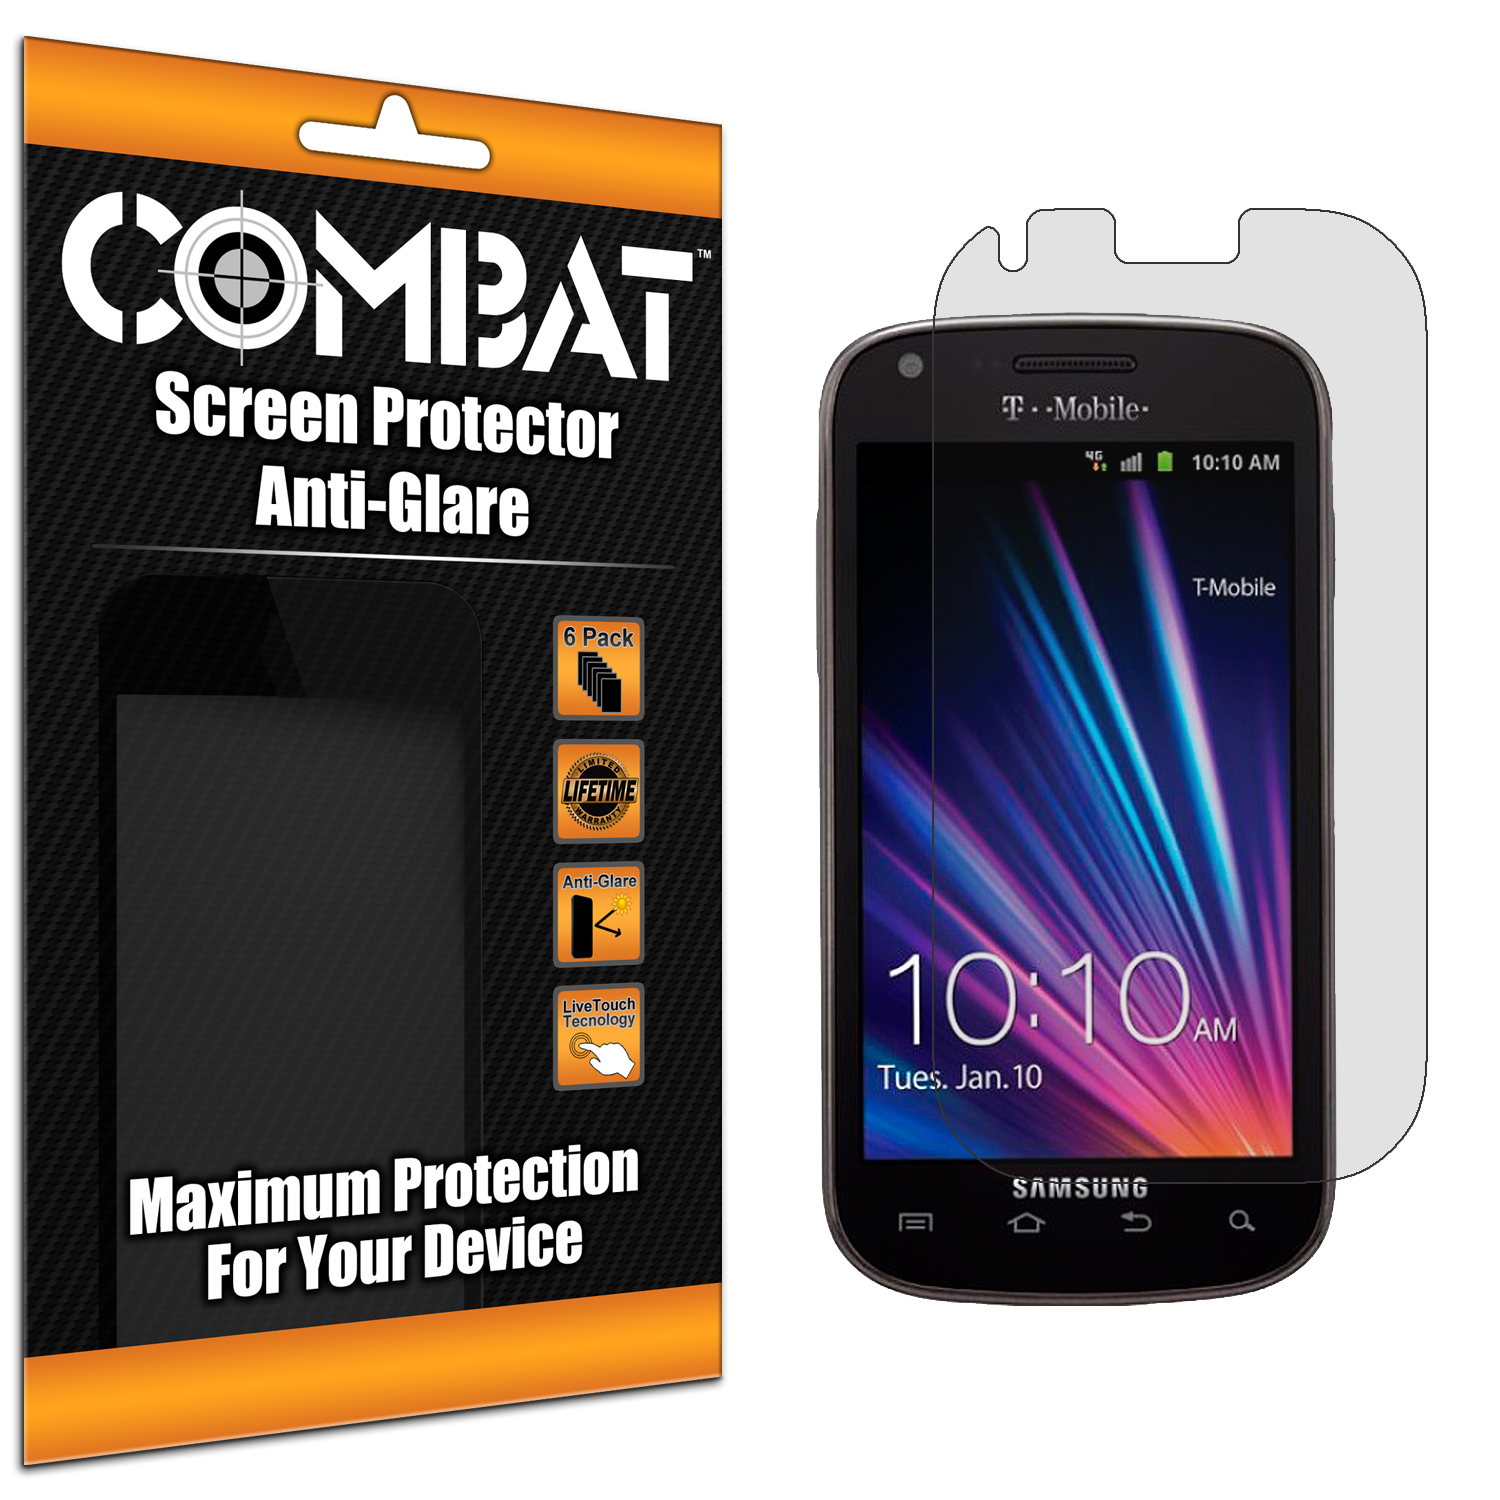 Samsung Galaxy S Blaze 4G T769 Combat 6 Pack Anti-Glare Matte Screen Protector